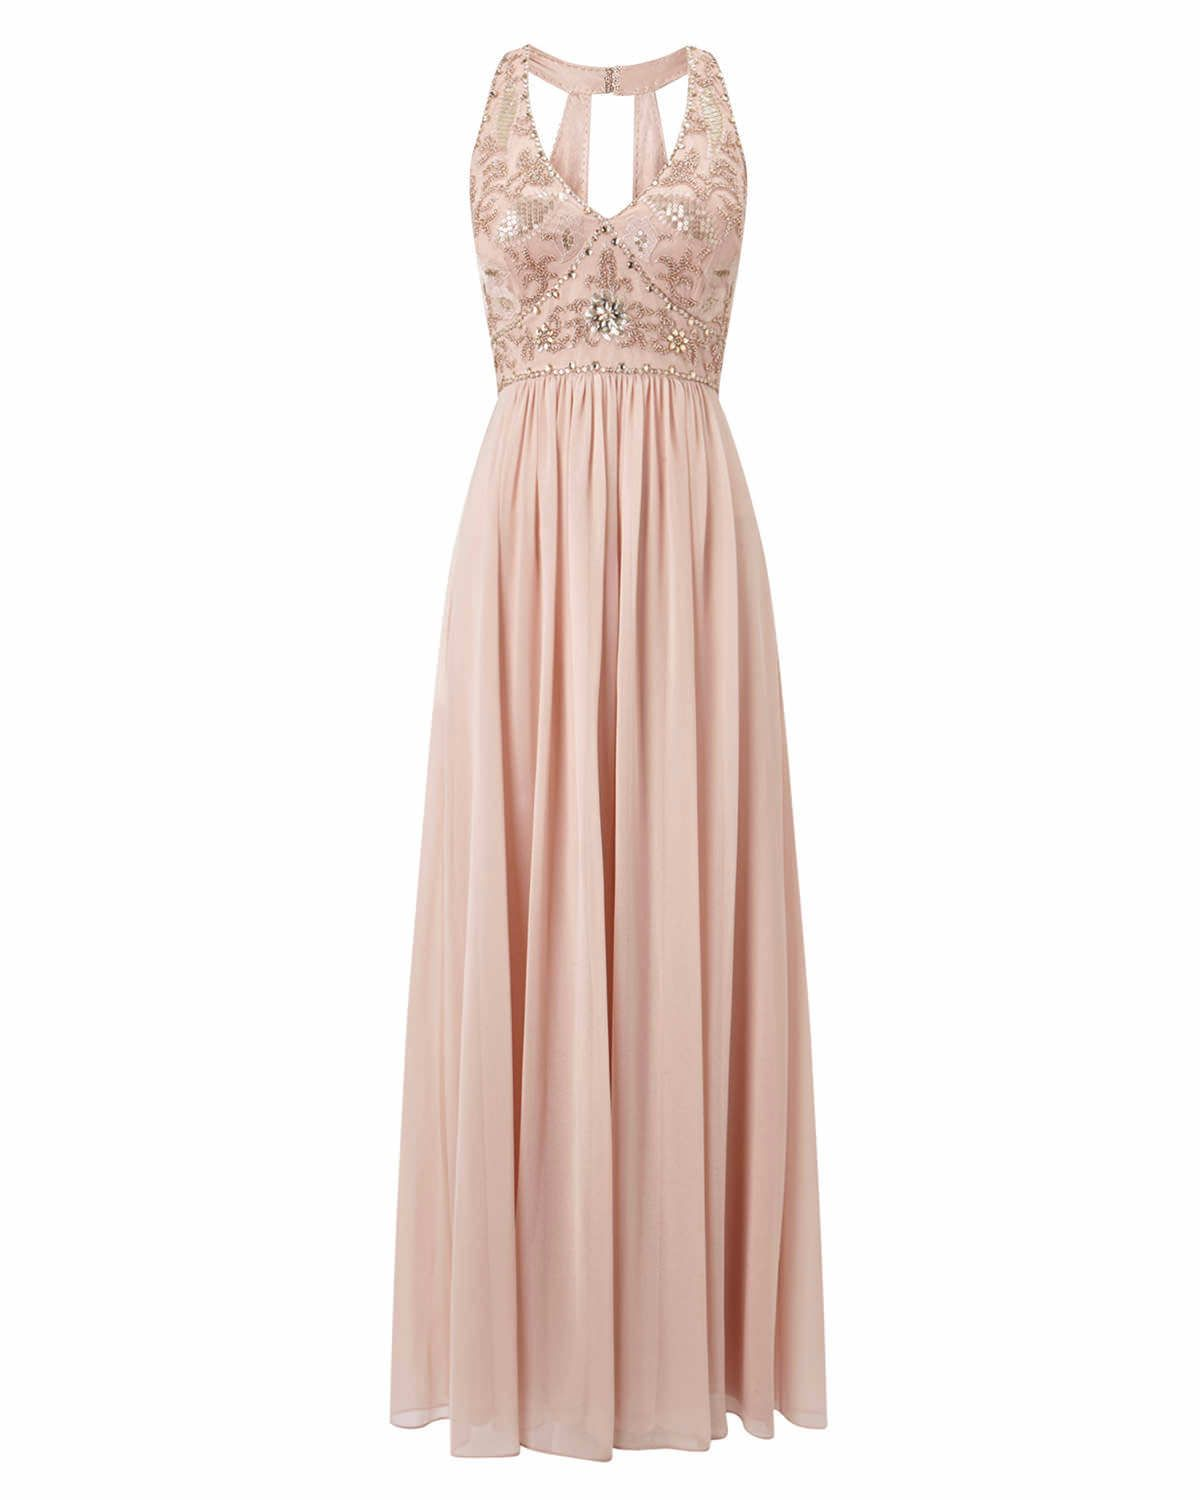 Phase Eight Etienne Embellished Full Length Dress Pink   Some day ...